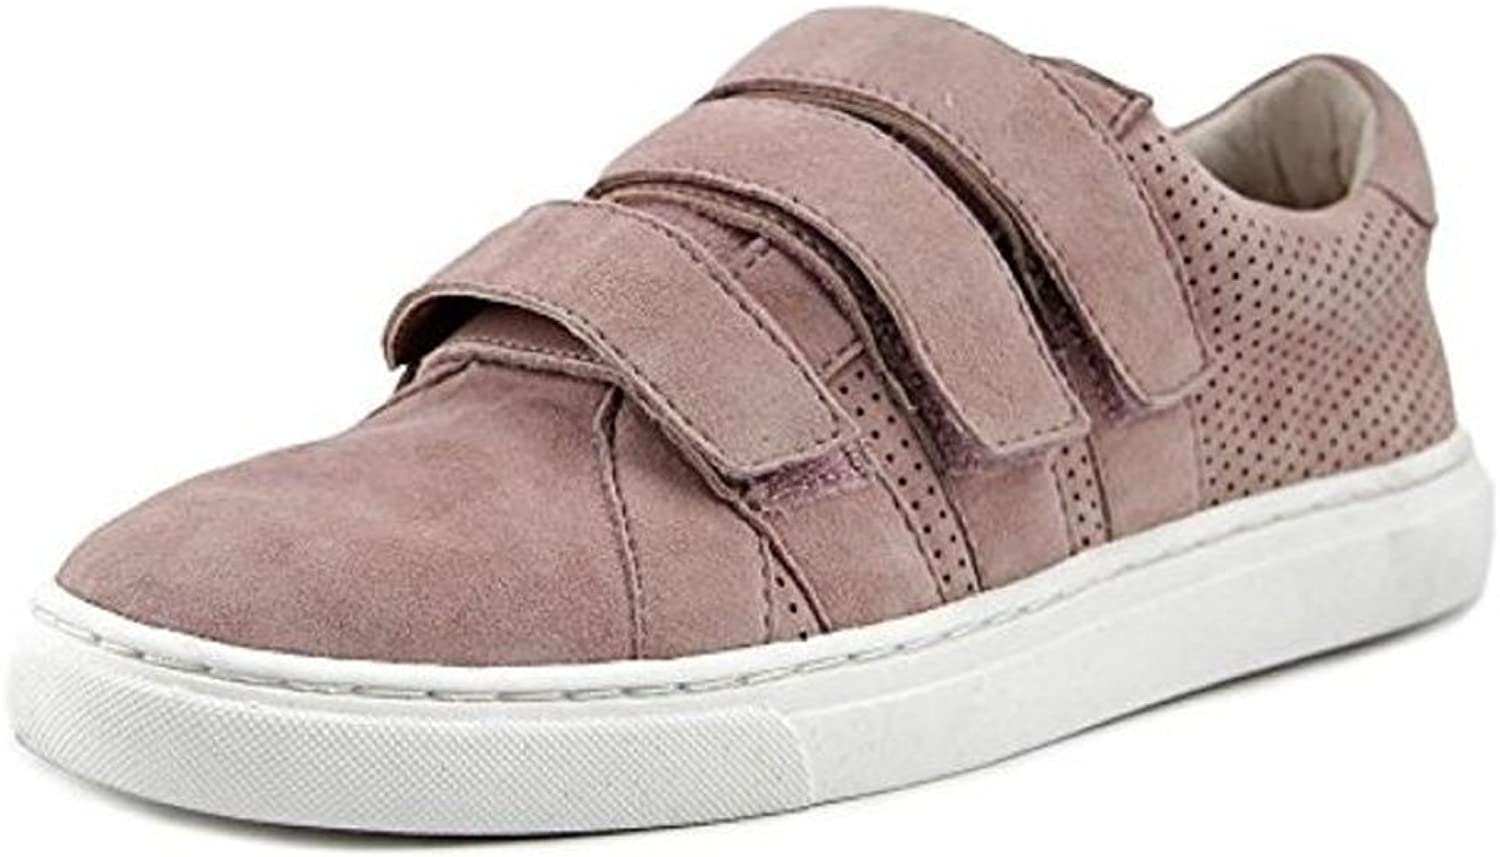 Vince Camuto Women's Breyda Suede Ankle-High Leather Slip-On shoes